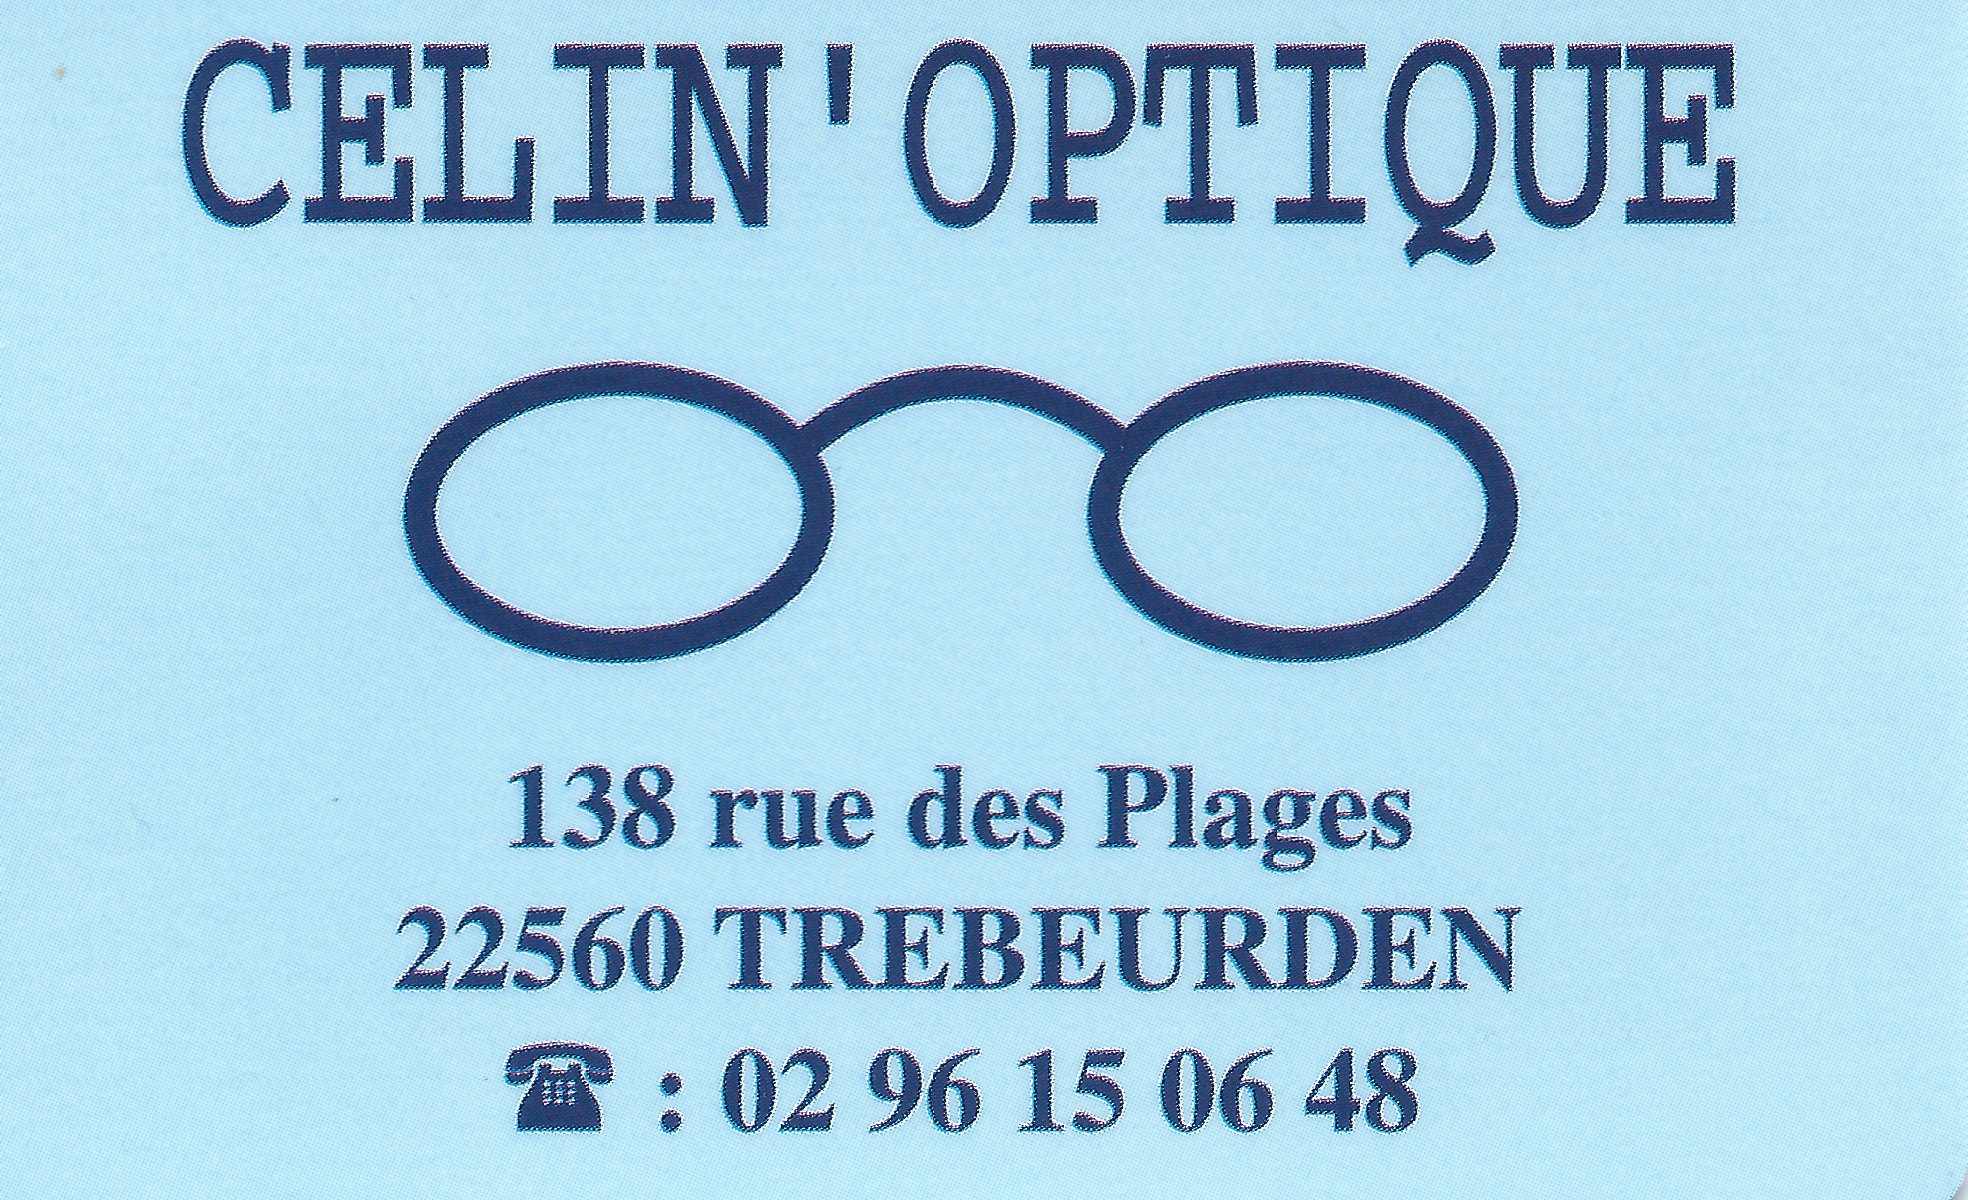 Celin Optique